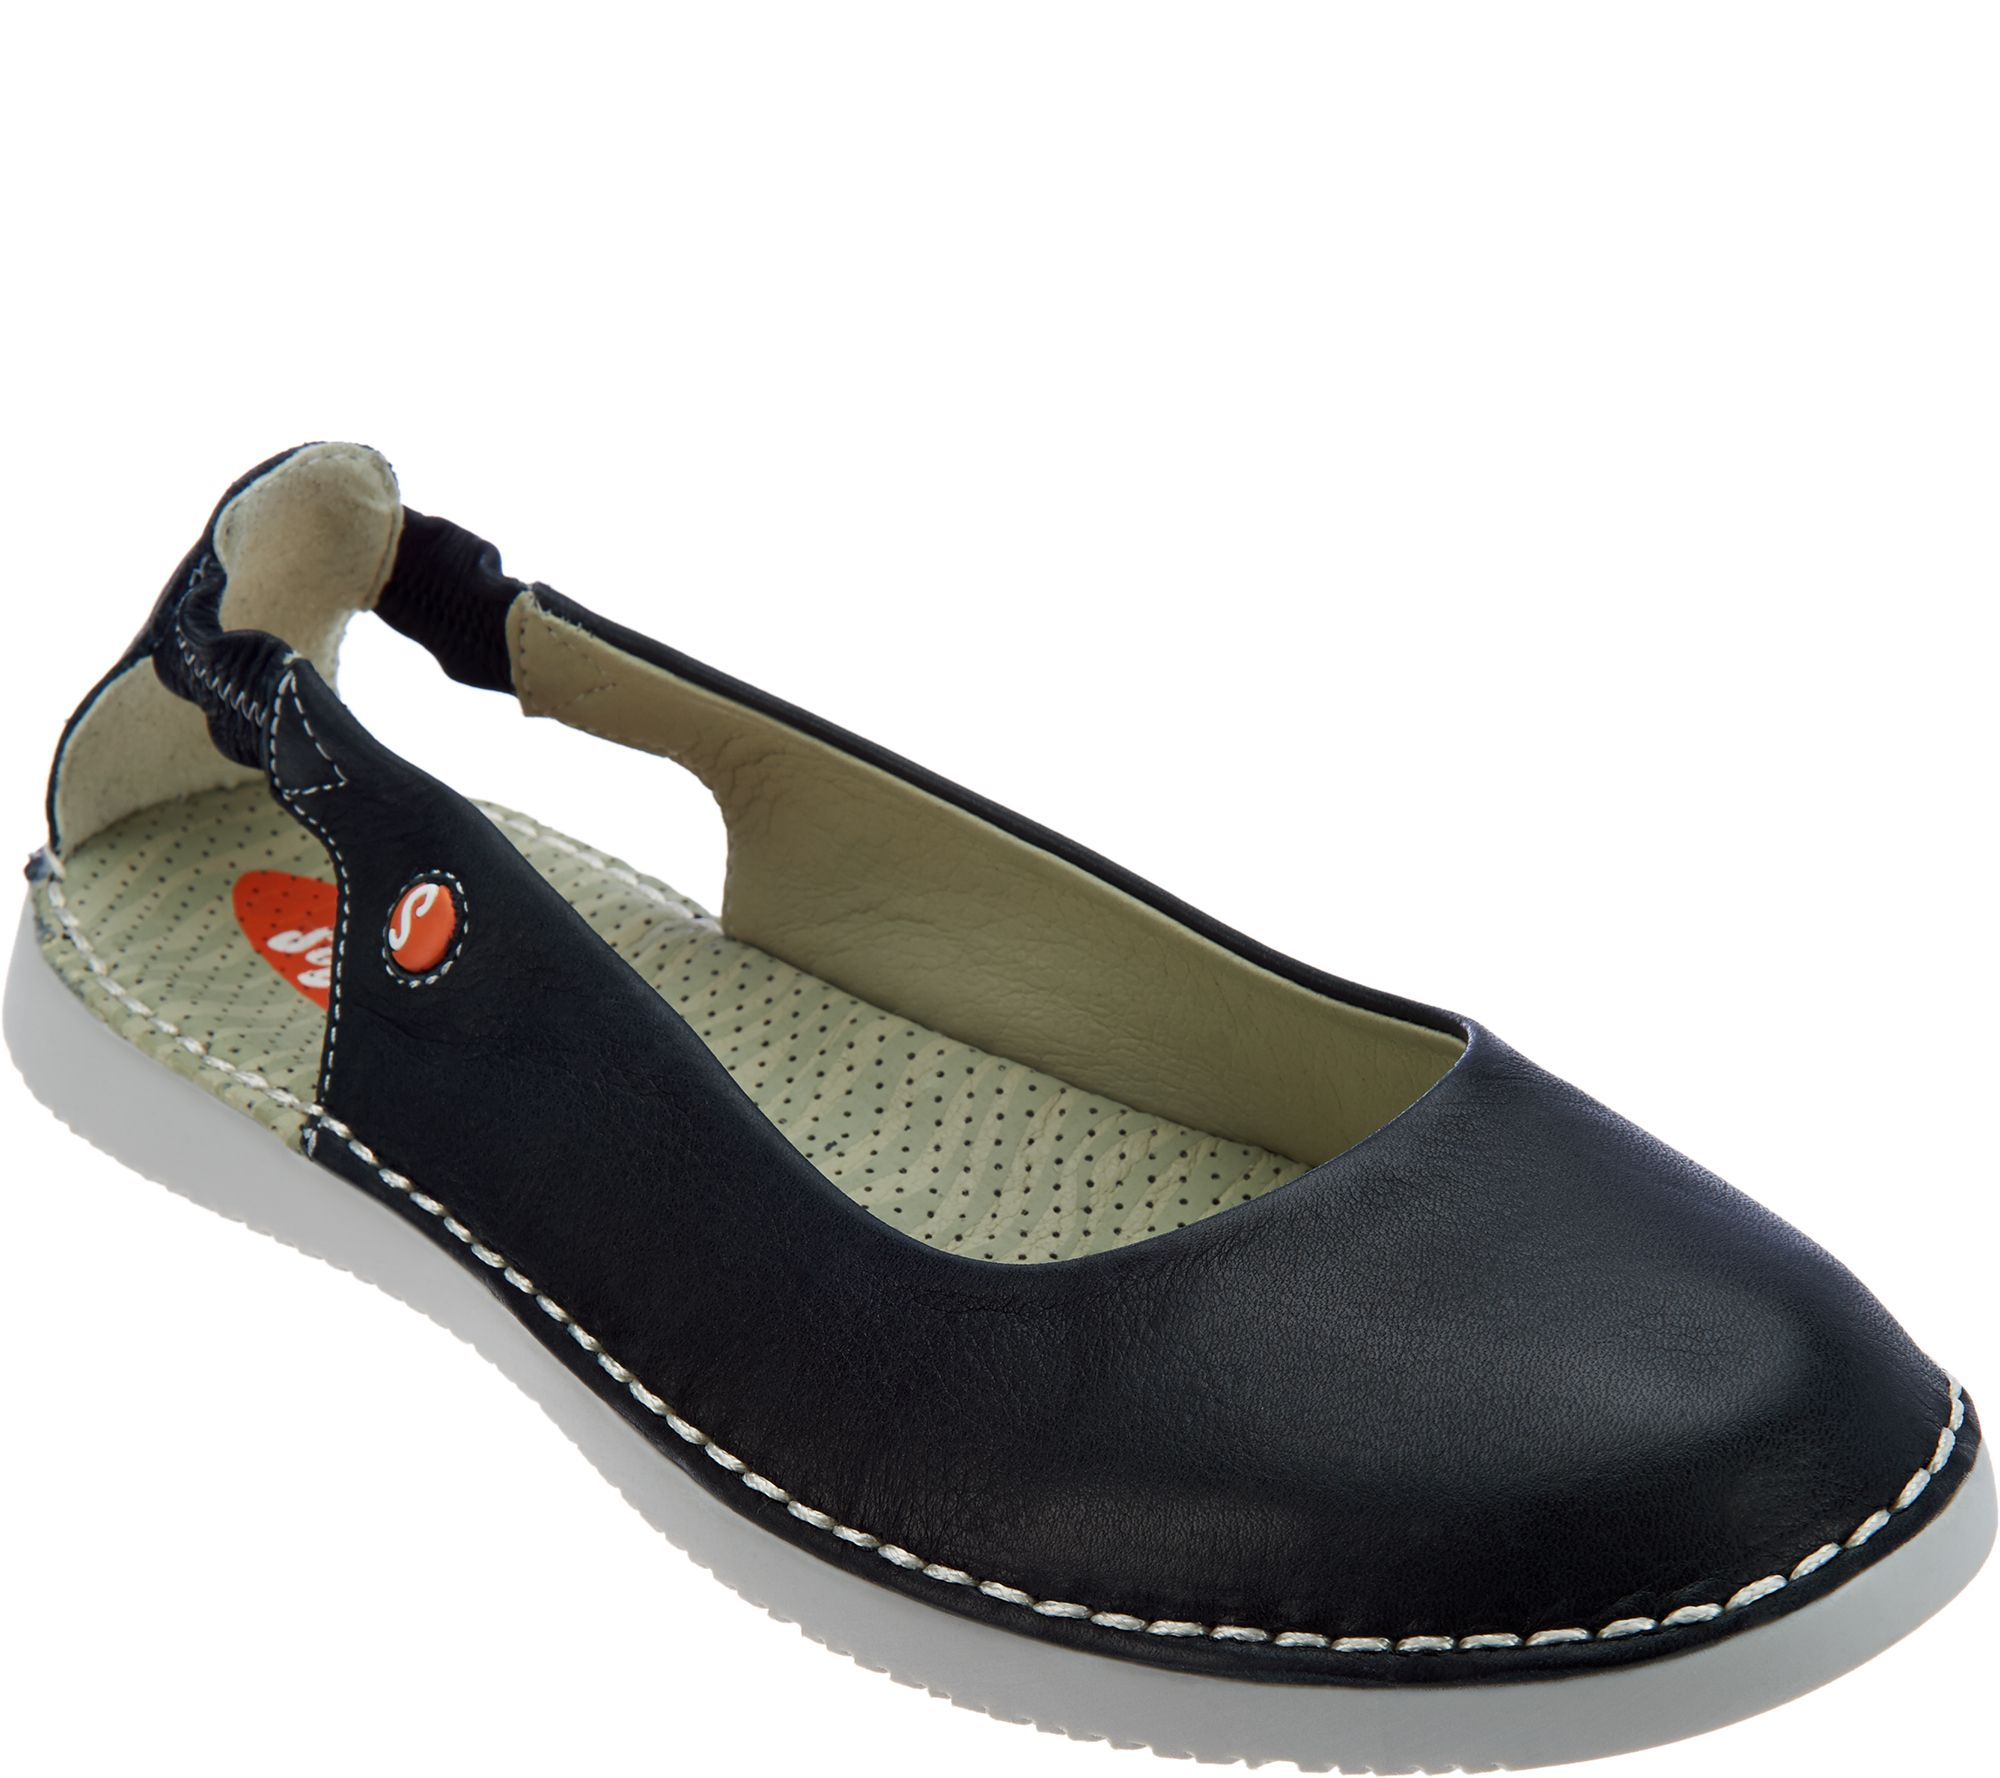 89e6e56949cd Softinos by FLY London Leather Slip-on Shoes - Tor - Page 1 — QVC.com